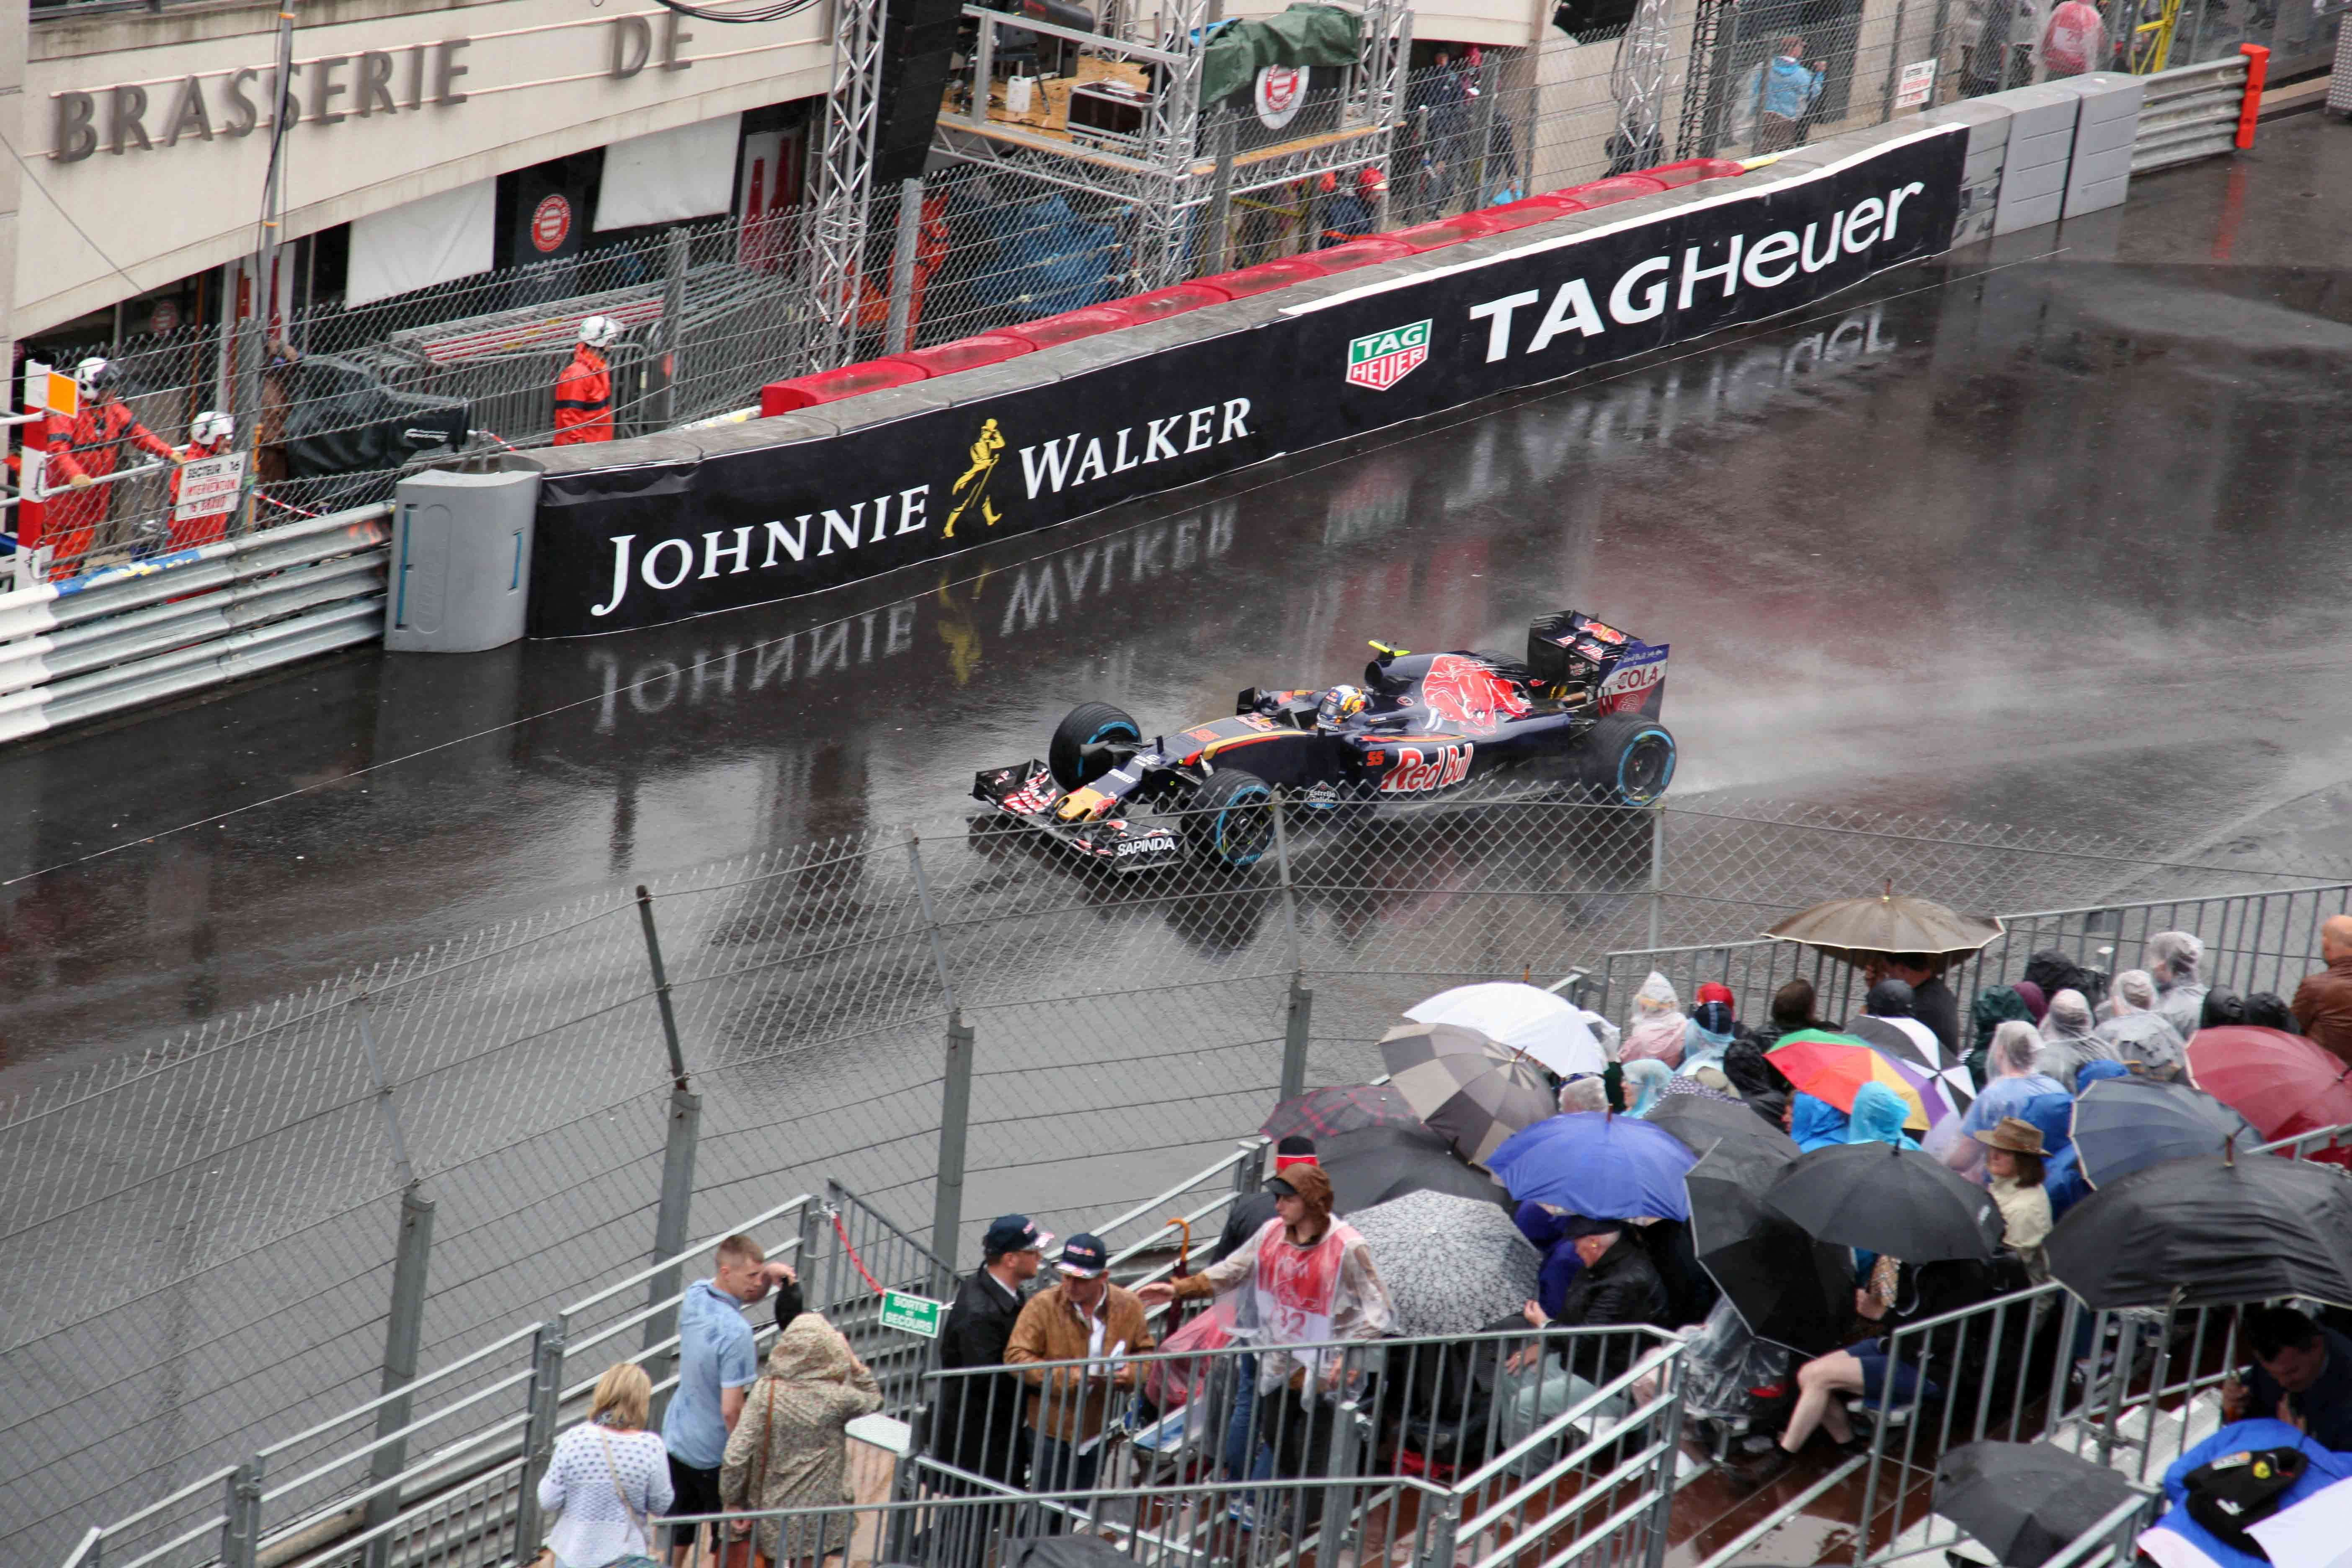 Photo Report: Behind The Scenes At The Monaco Grand Prix 2016 With TAG Heuer CEO Jean-Claude Biver Photo Report: Behind The Scenes At The Monaco Grand Prix 2016 With TAG Heuer CEO Jean-Claude Biver IMG 0873